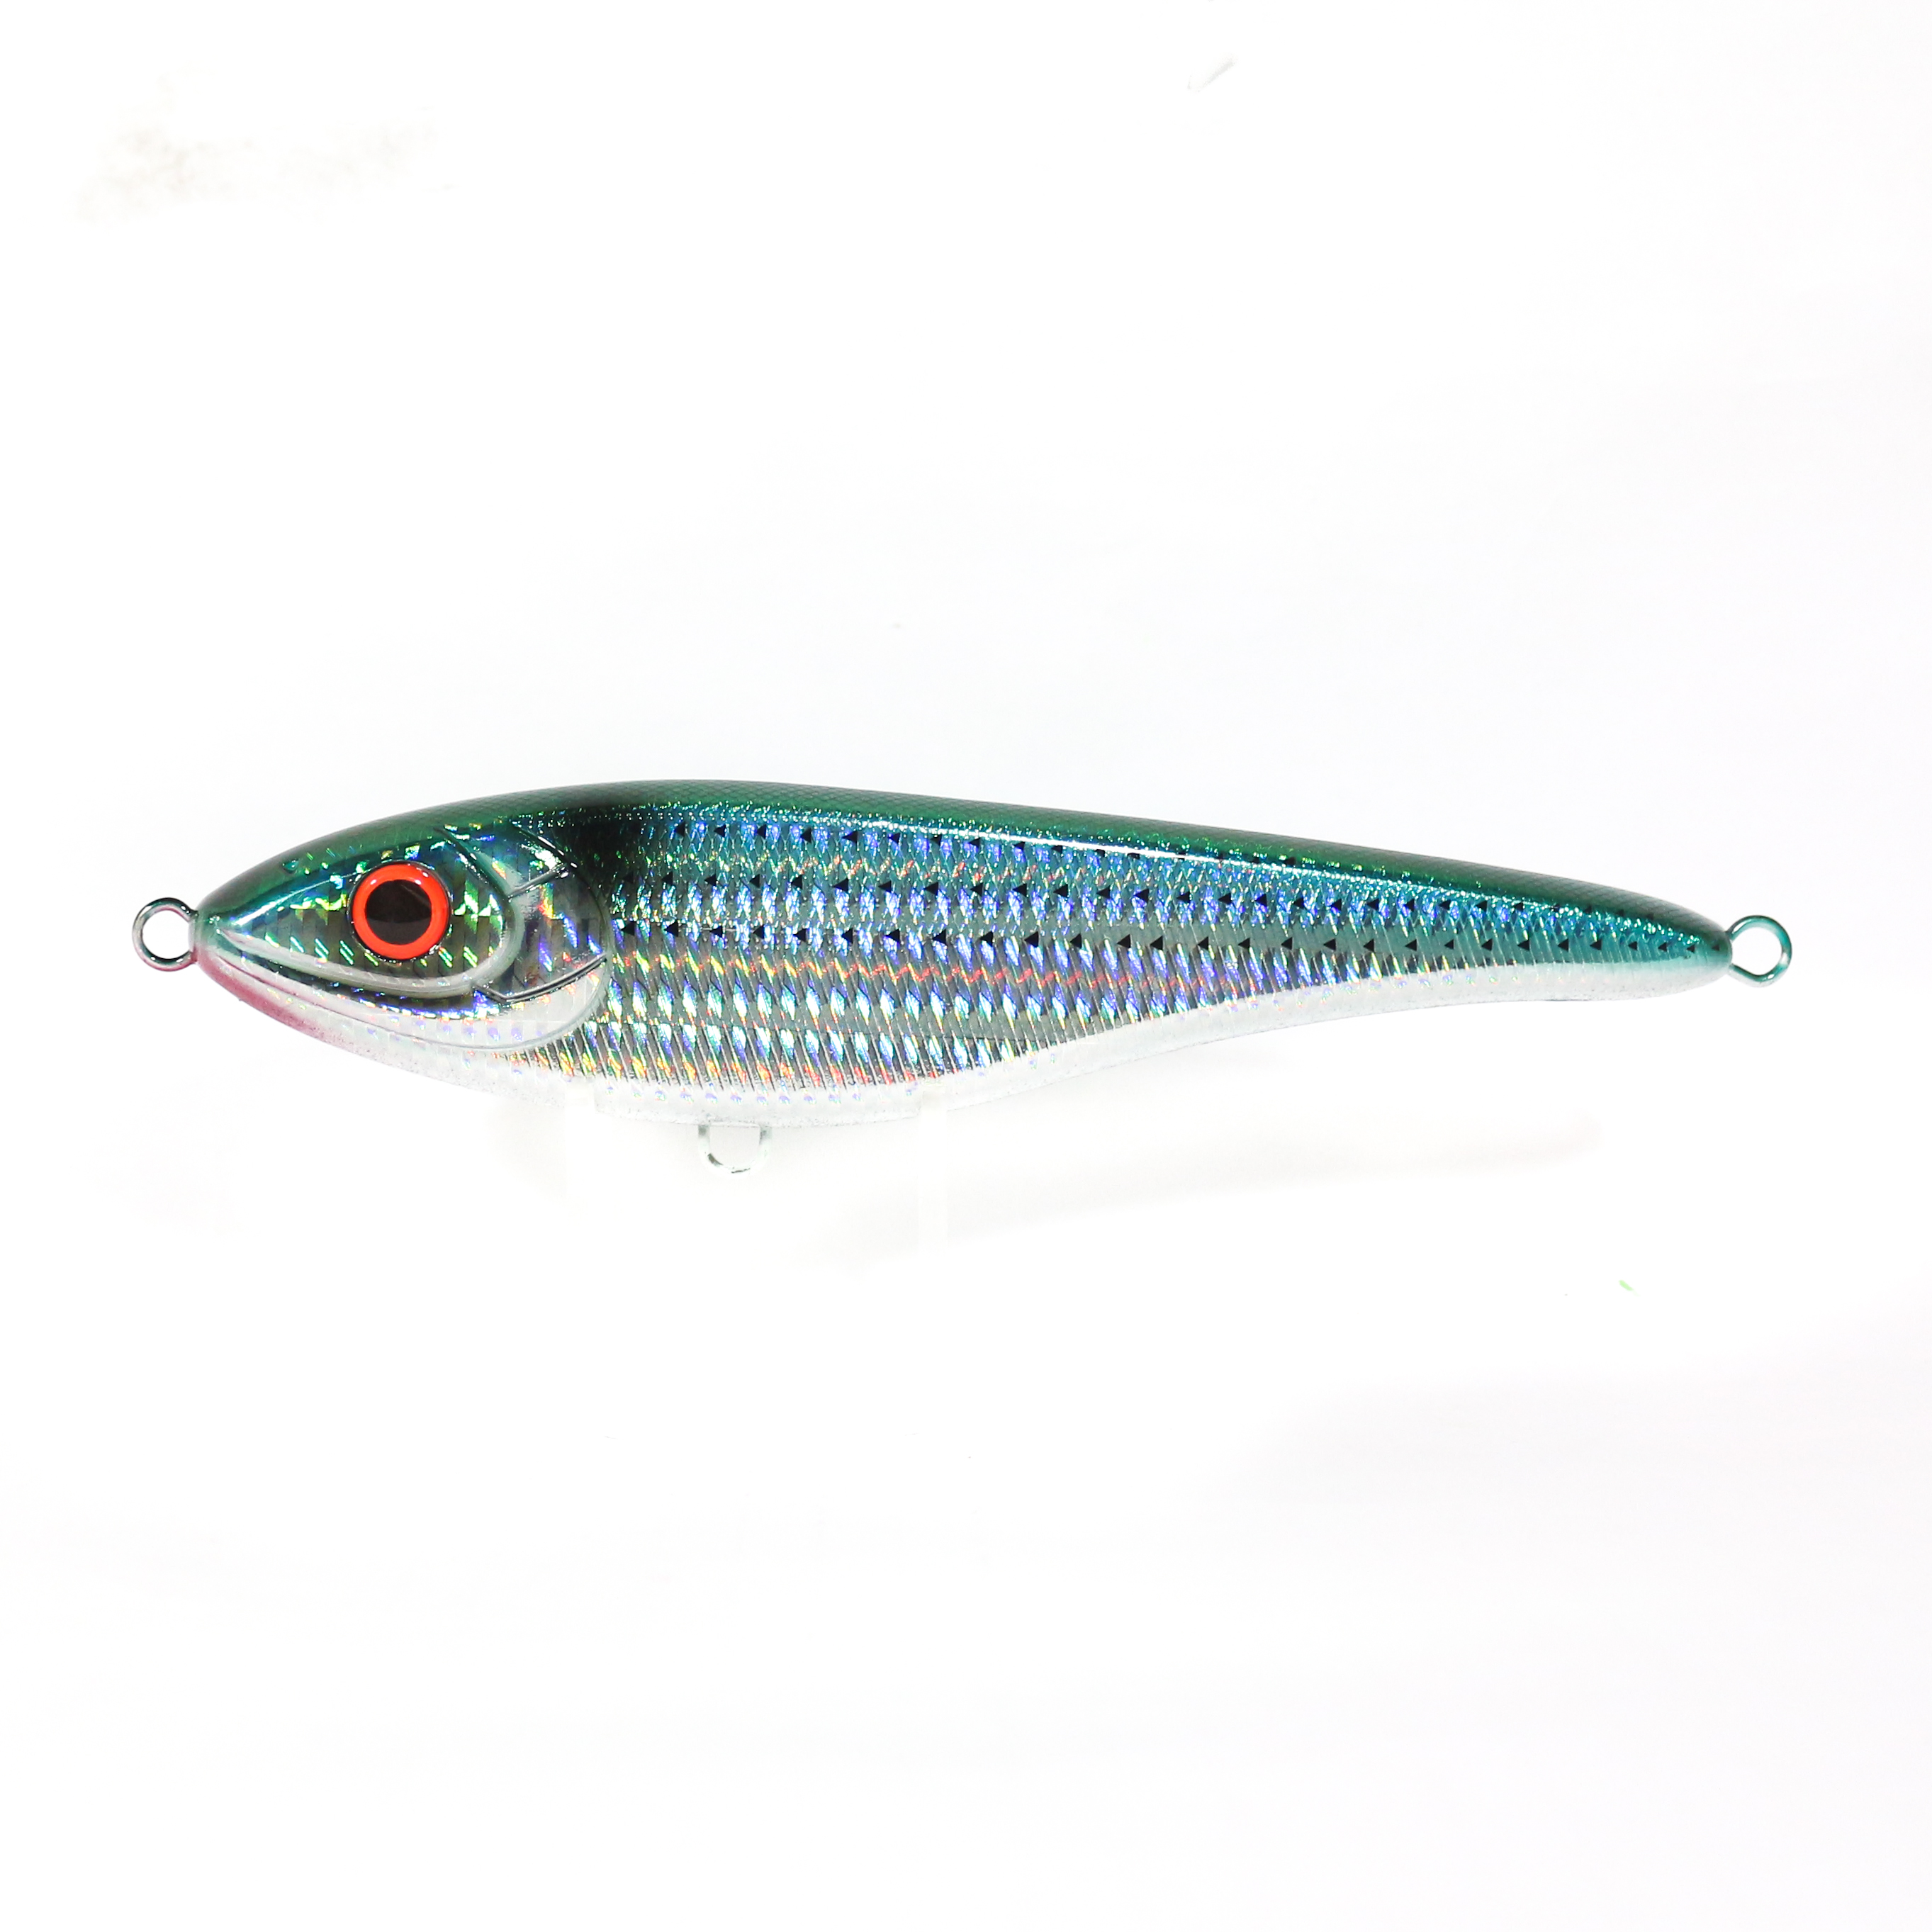 Mangrove Studio Big Bandit 195 mm 78 grams Floating Lure Green (1497)